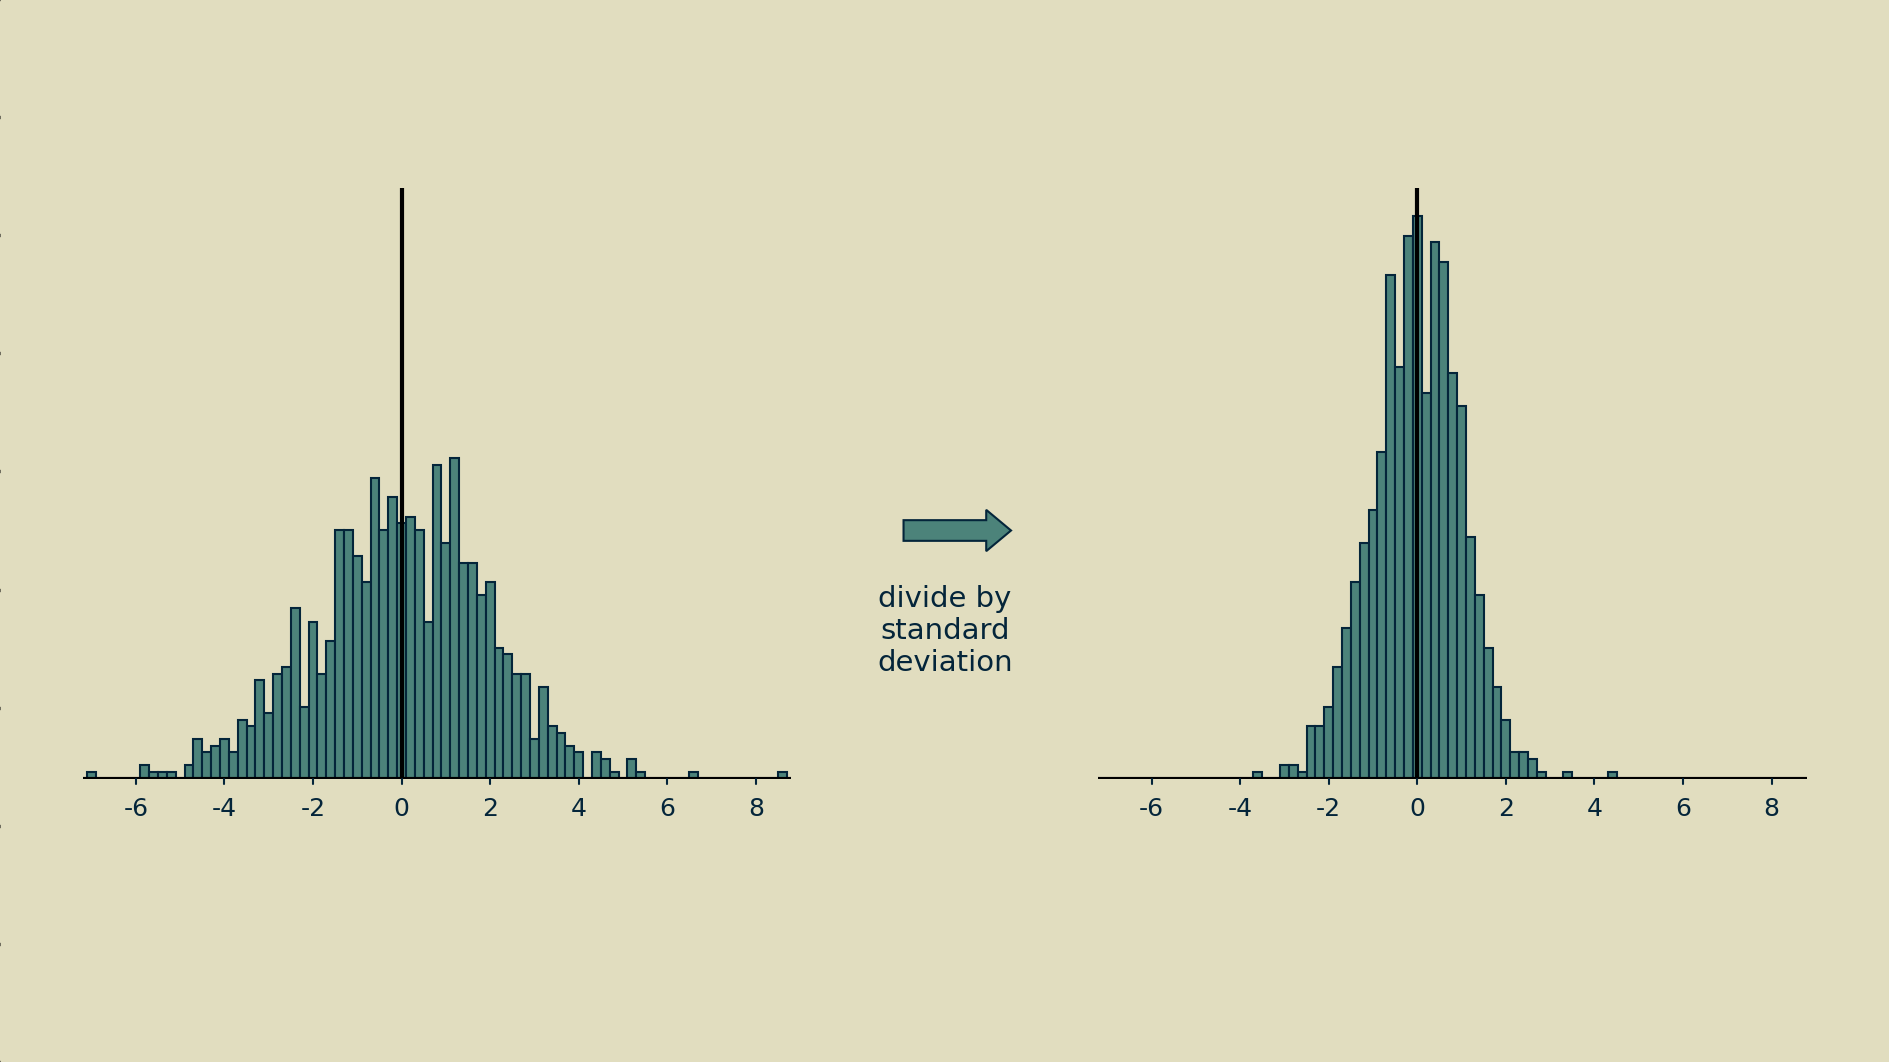 Scaling by dividing by the standard deviation